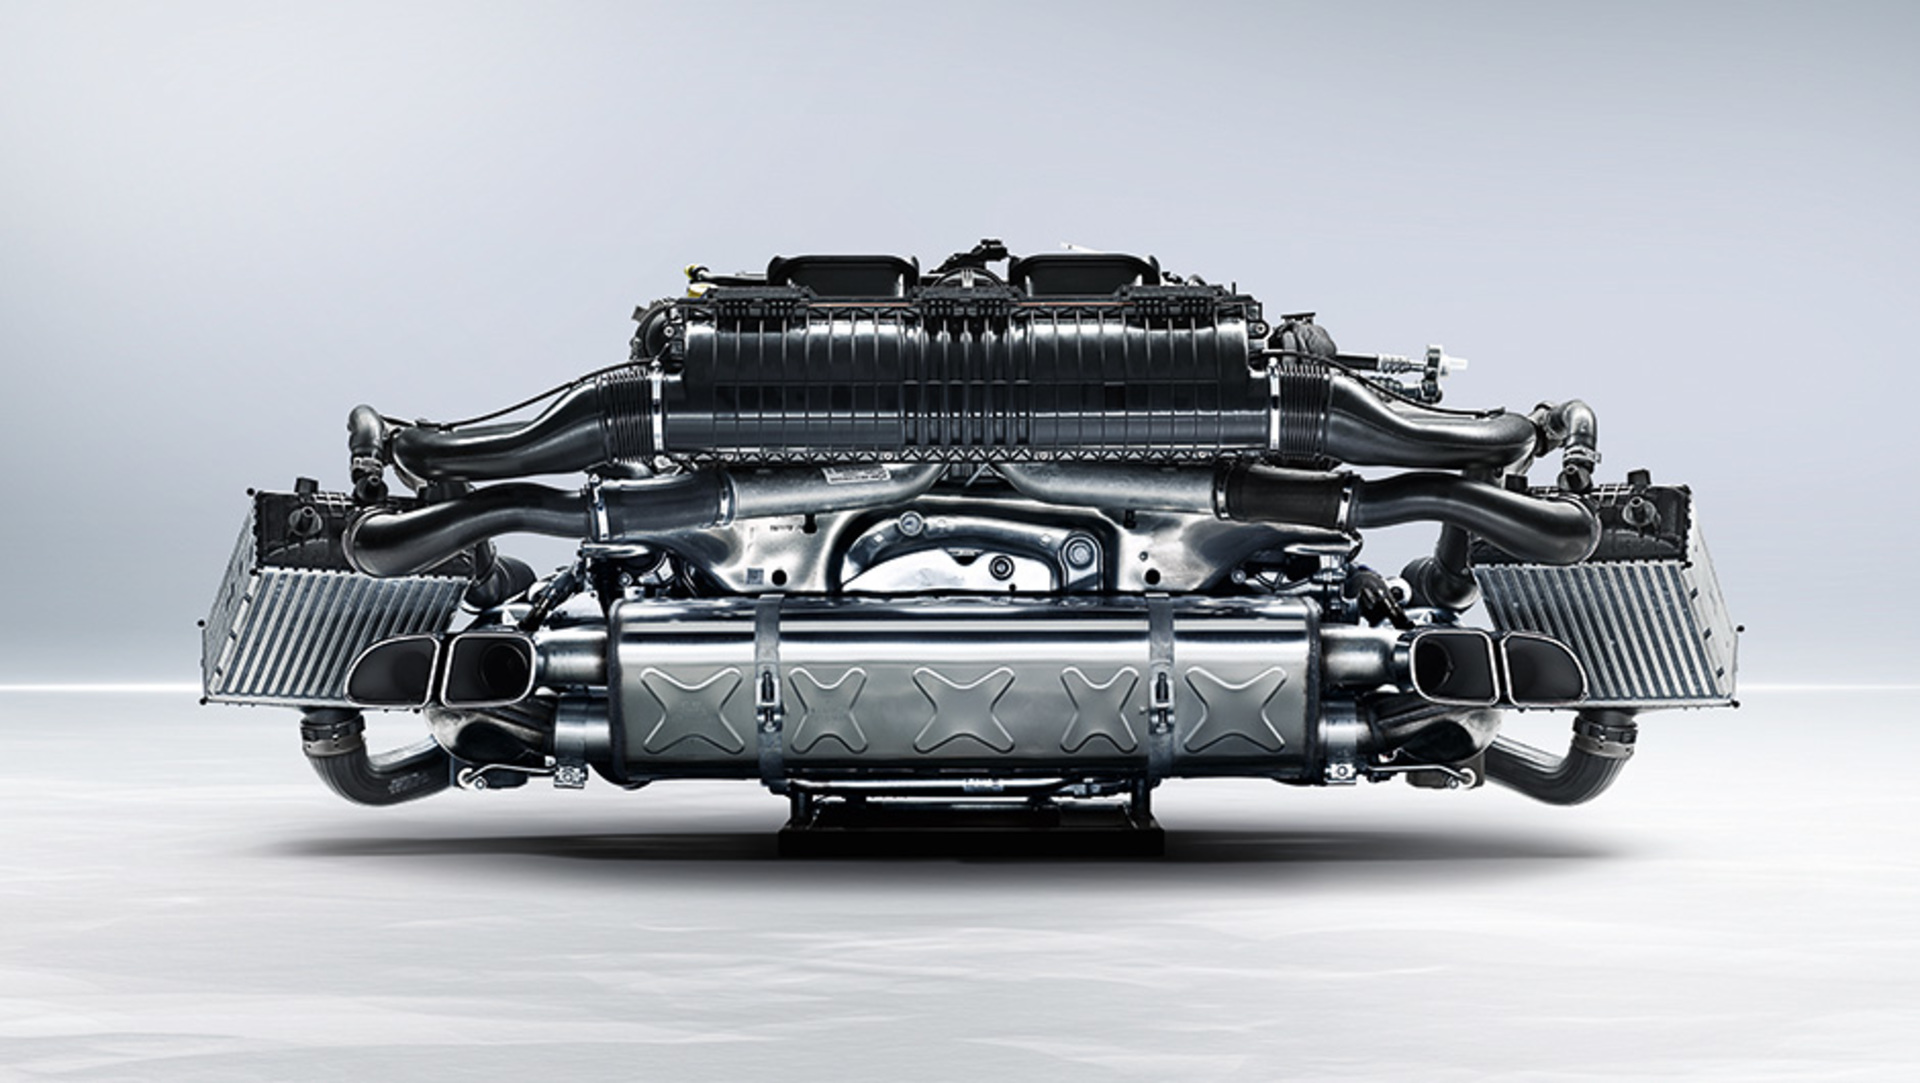 Boxer Engines In The 911 Turbo 2014 Porsche Ag